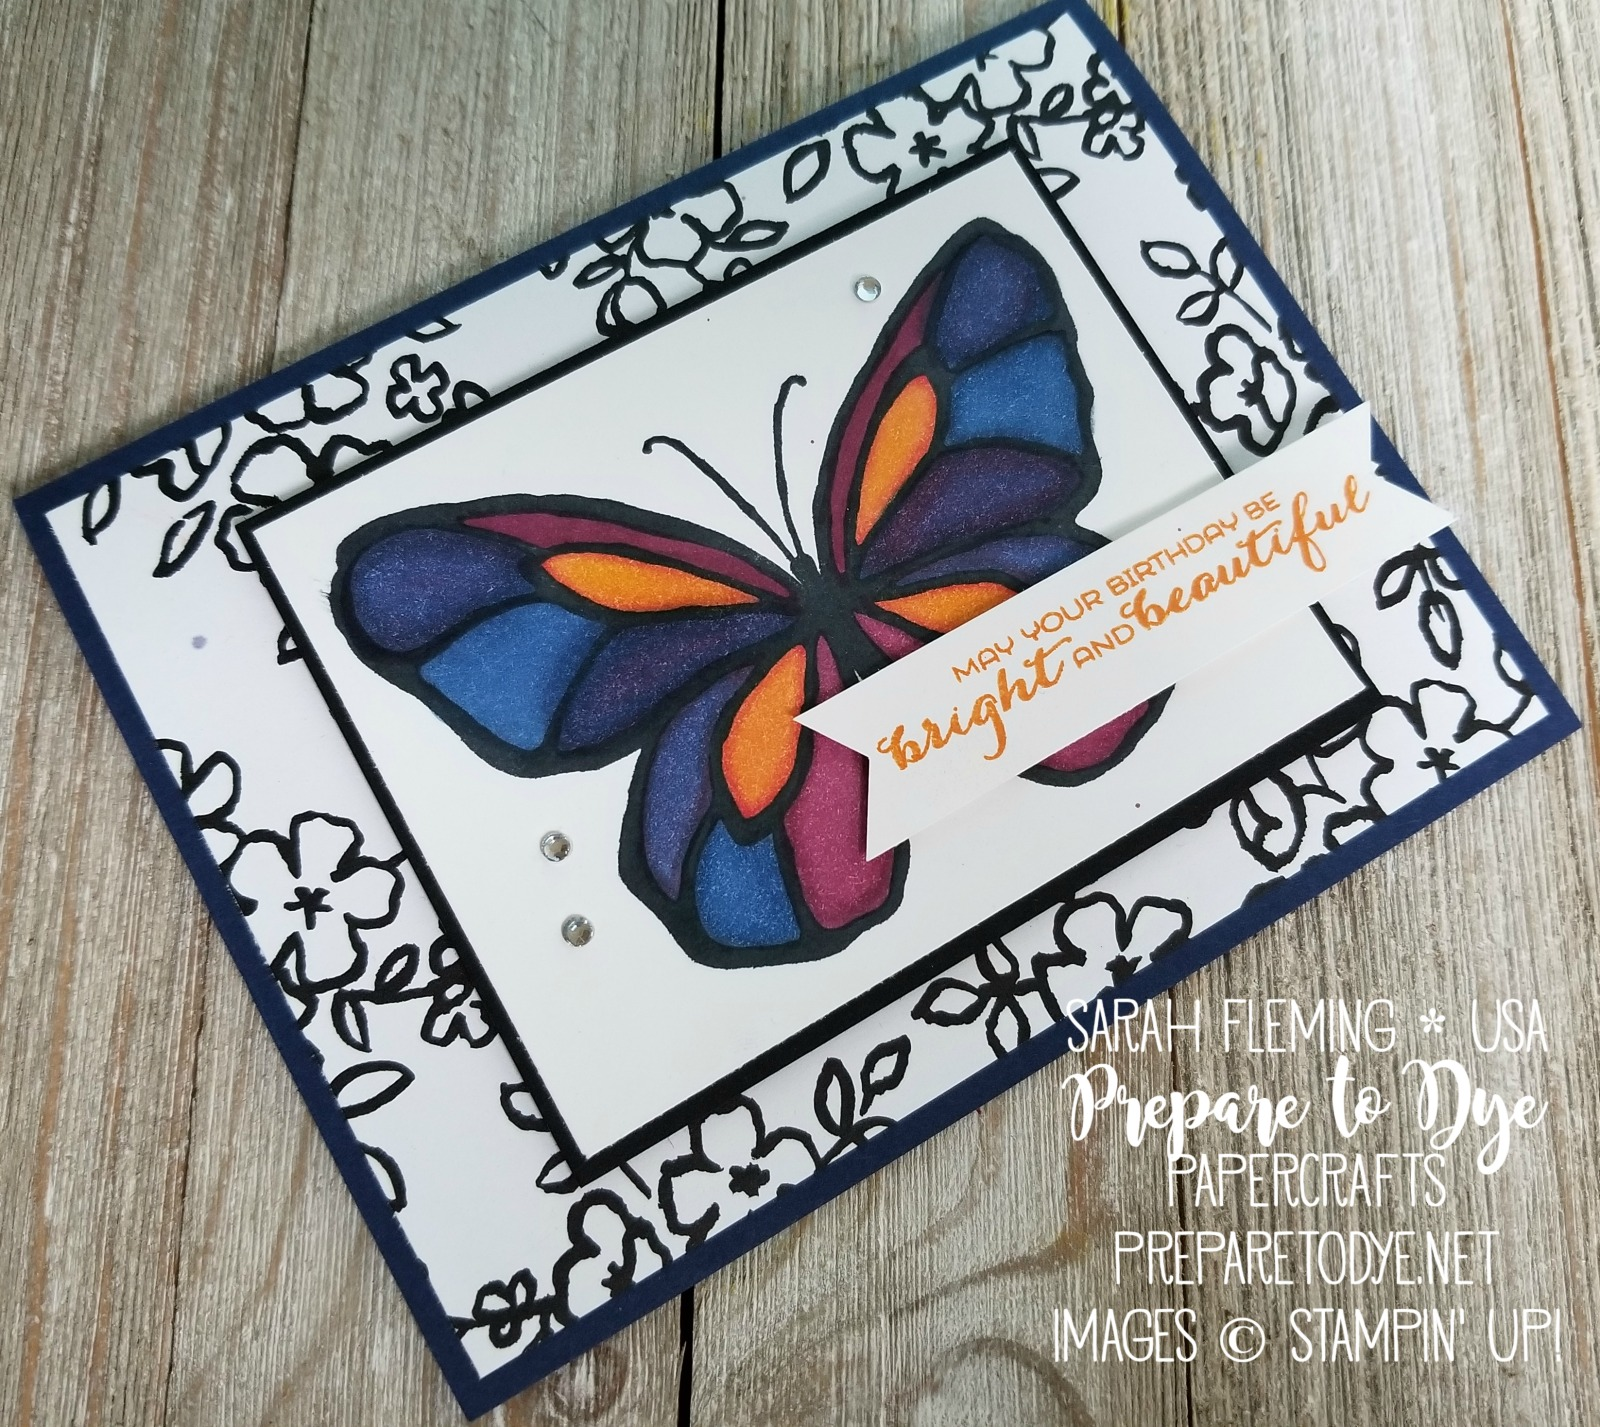 Stampin' Up! Beautiful Day with Petal Palette paper, Sunshine & Rainbows sentiment, and Stampin' Blends - handmade friend or birthday card - Sarah Fleming - Prepare to Dye Papercrafts